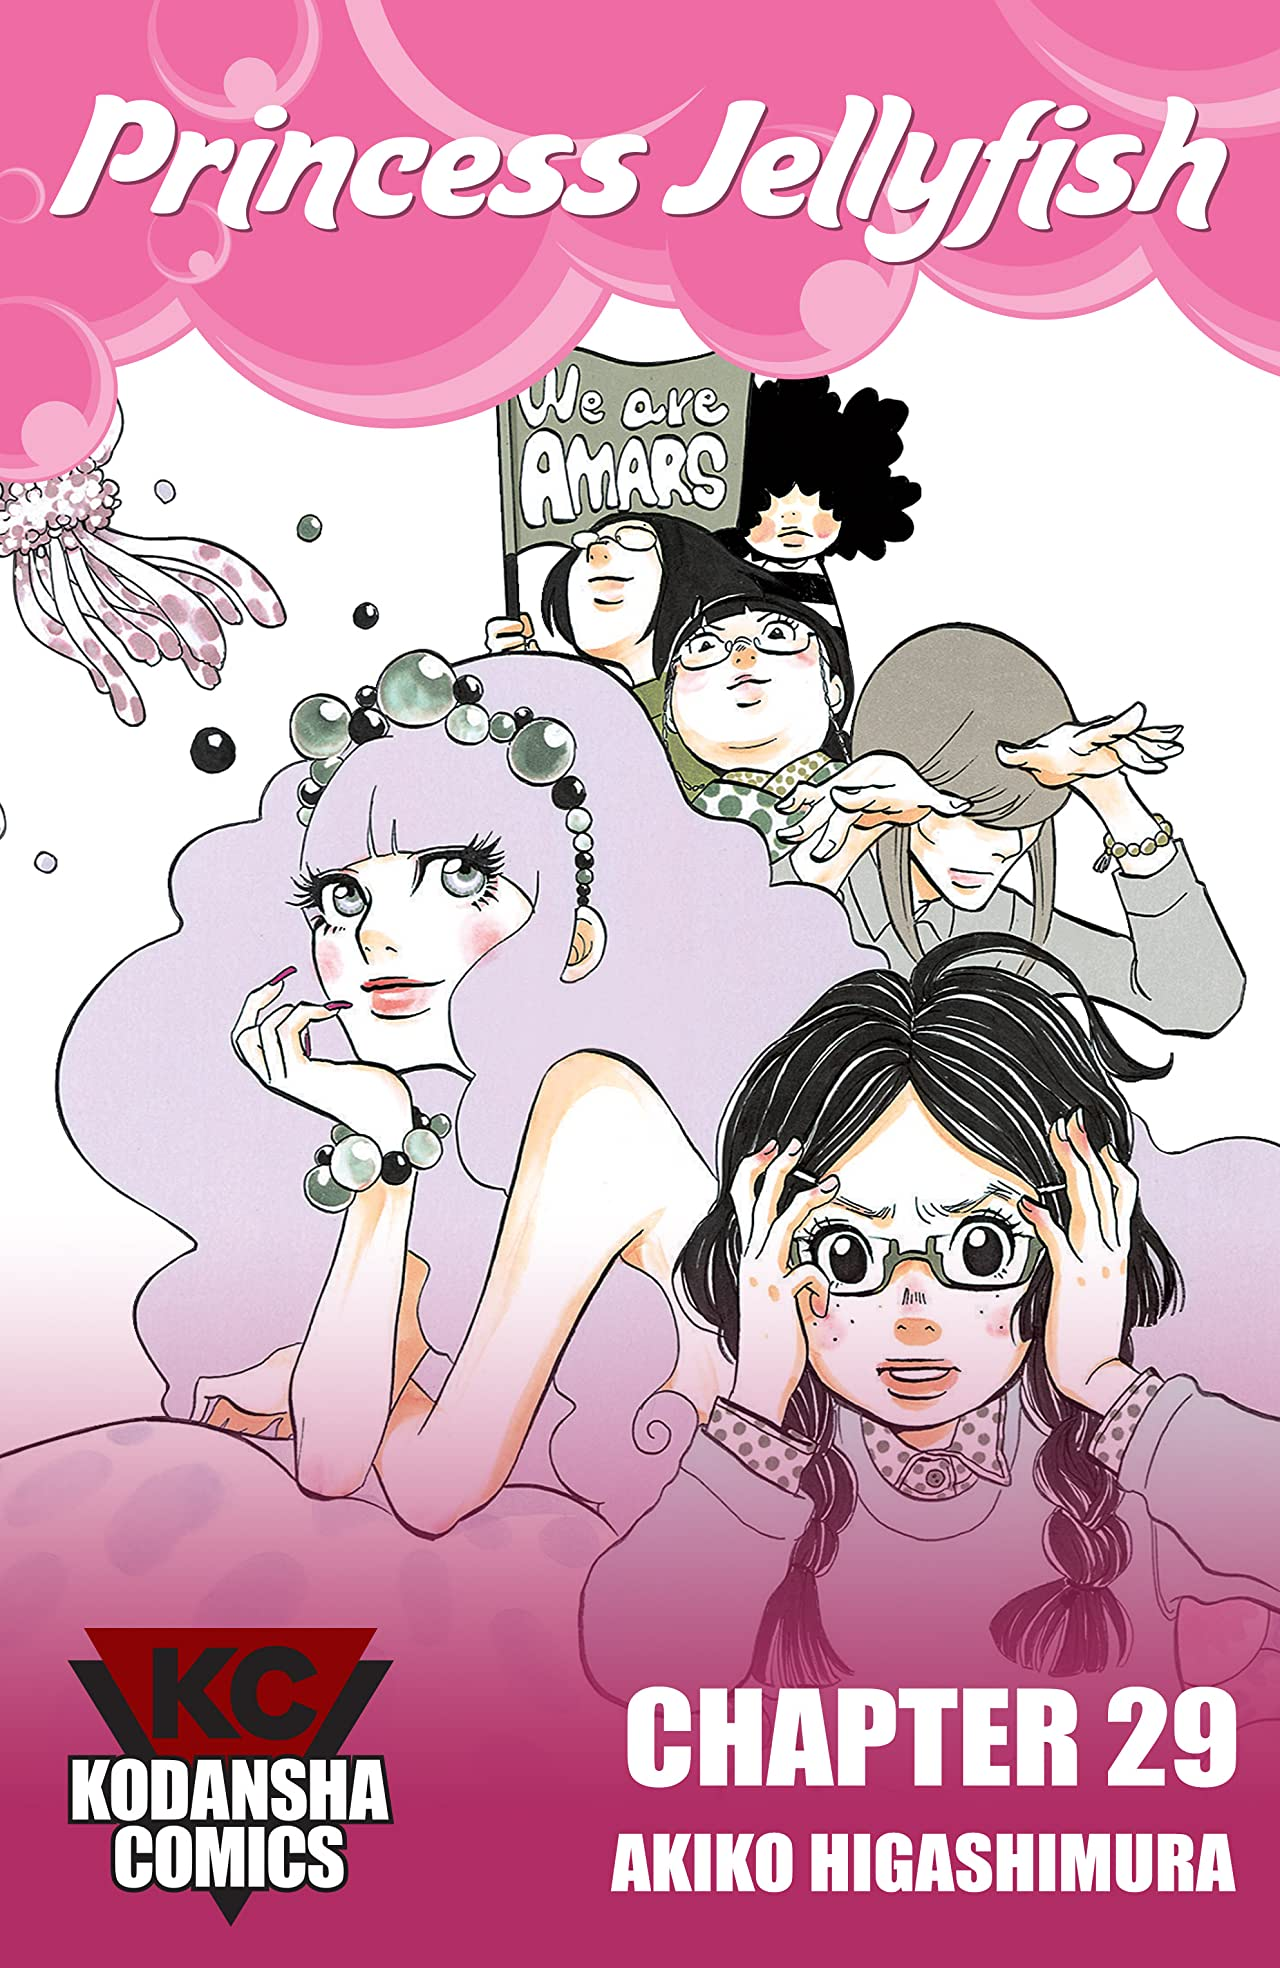 Princess Jellyfish #29